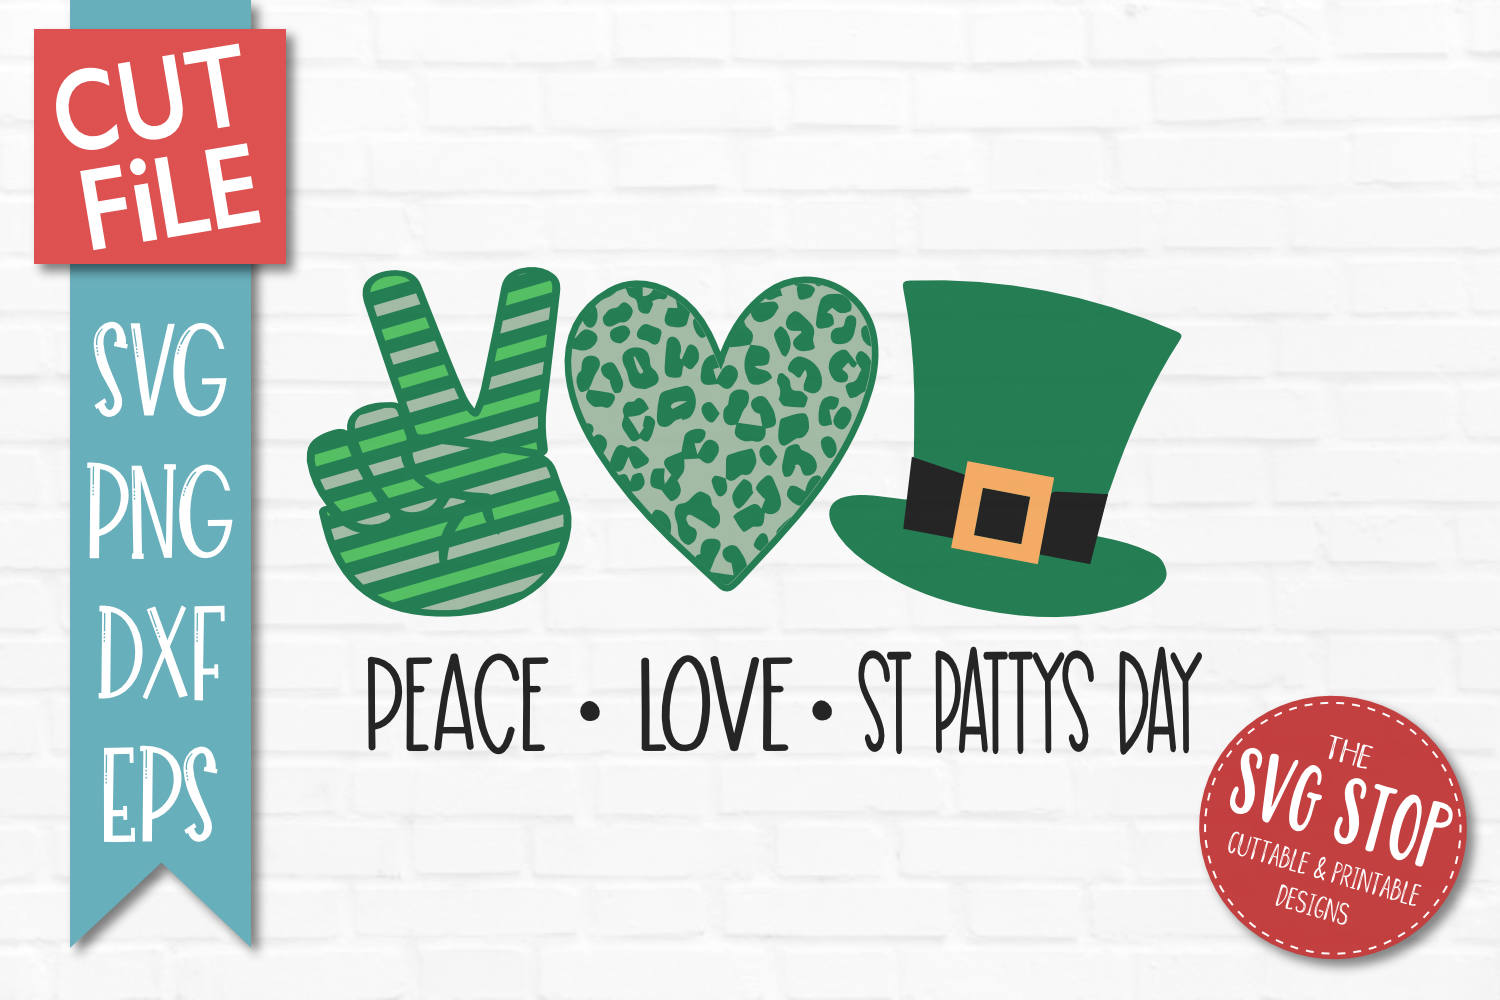 Peace Love St Patricks Day SVG, PNG, DXF, EPS example image 1